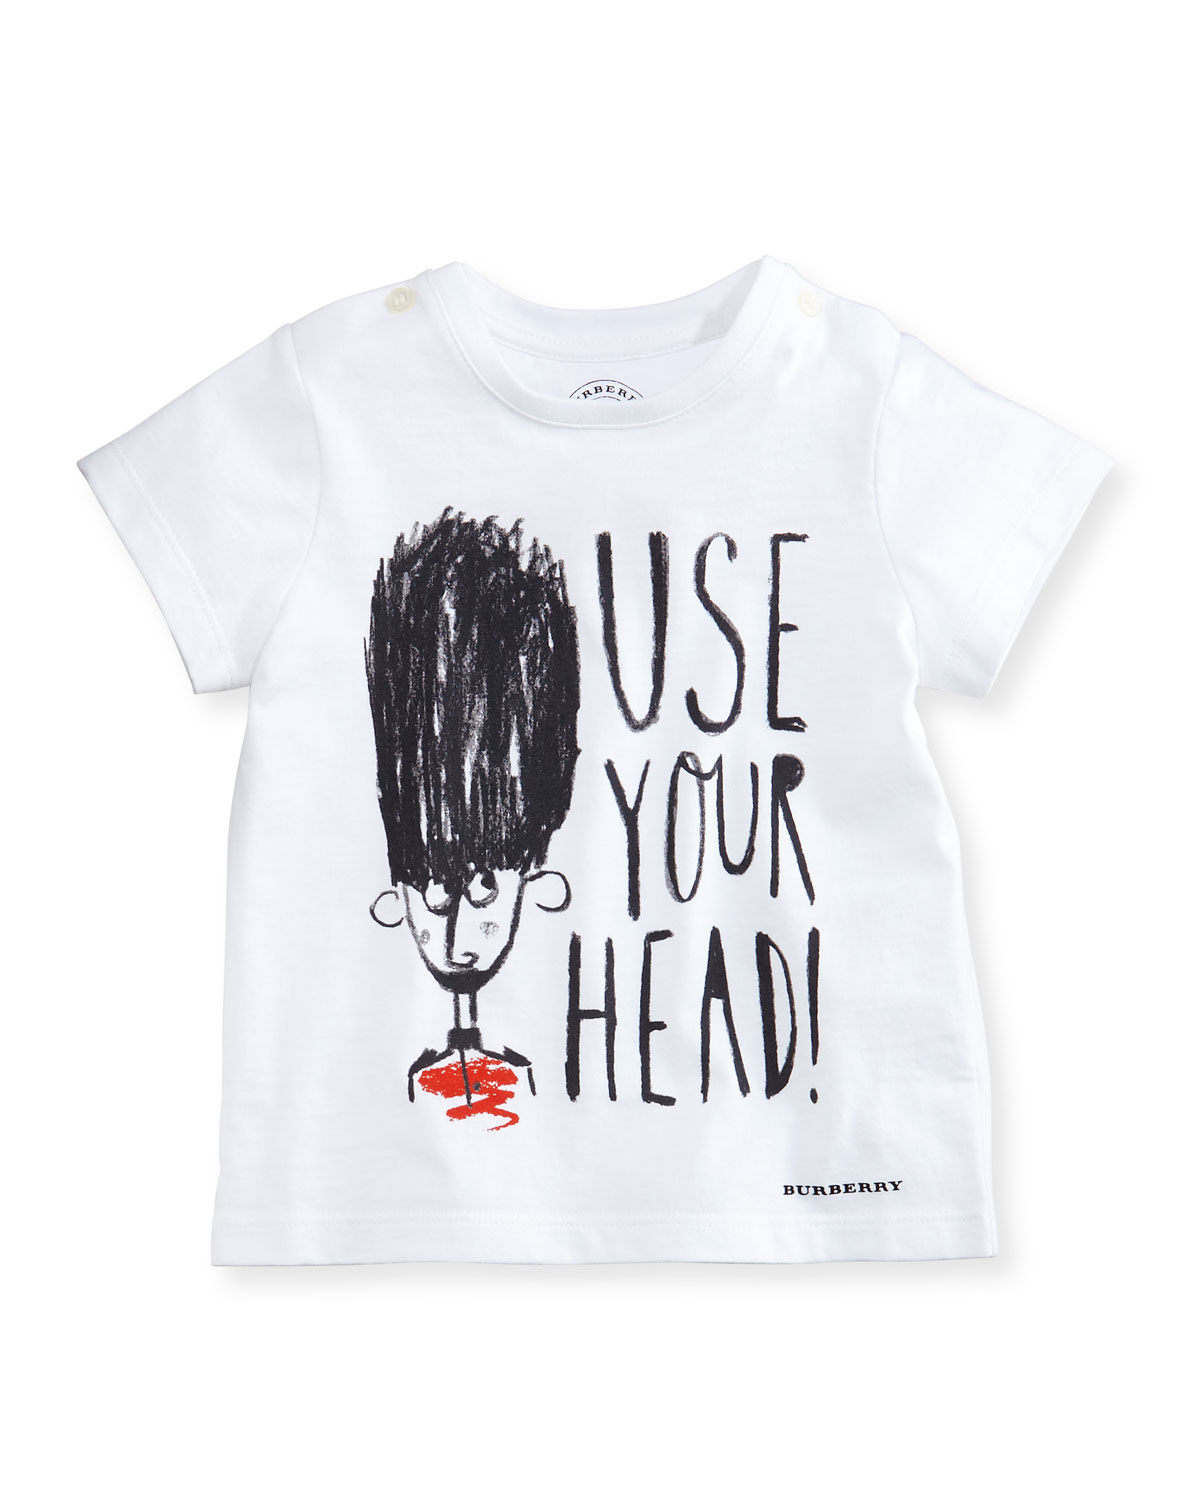 Use Your Head Crewneck Jersey Tee, White, Size 6M-3